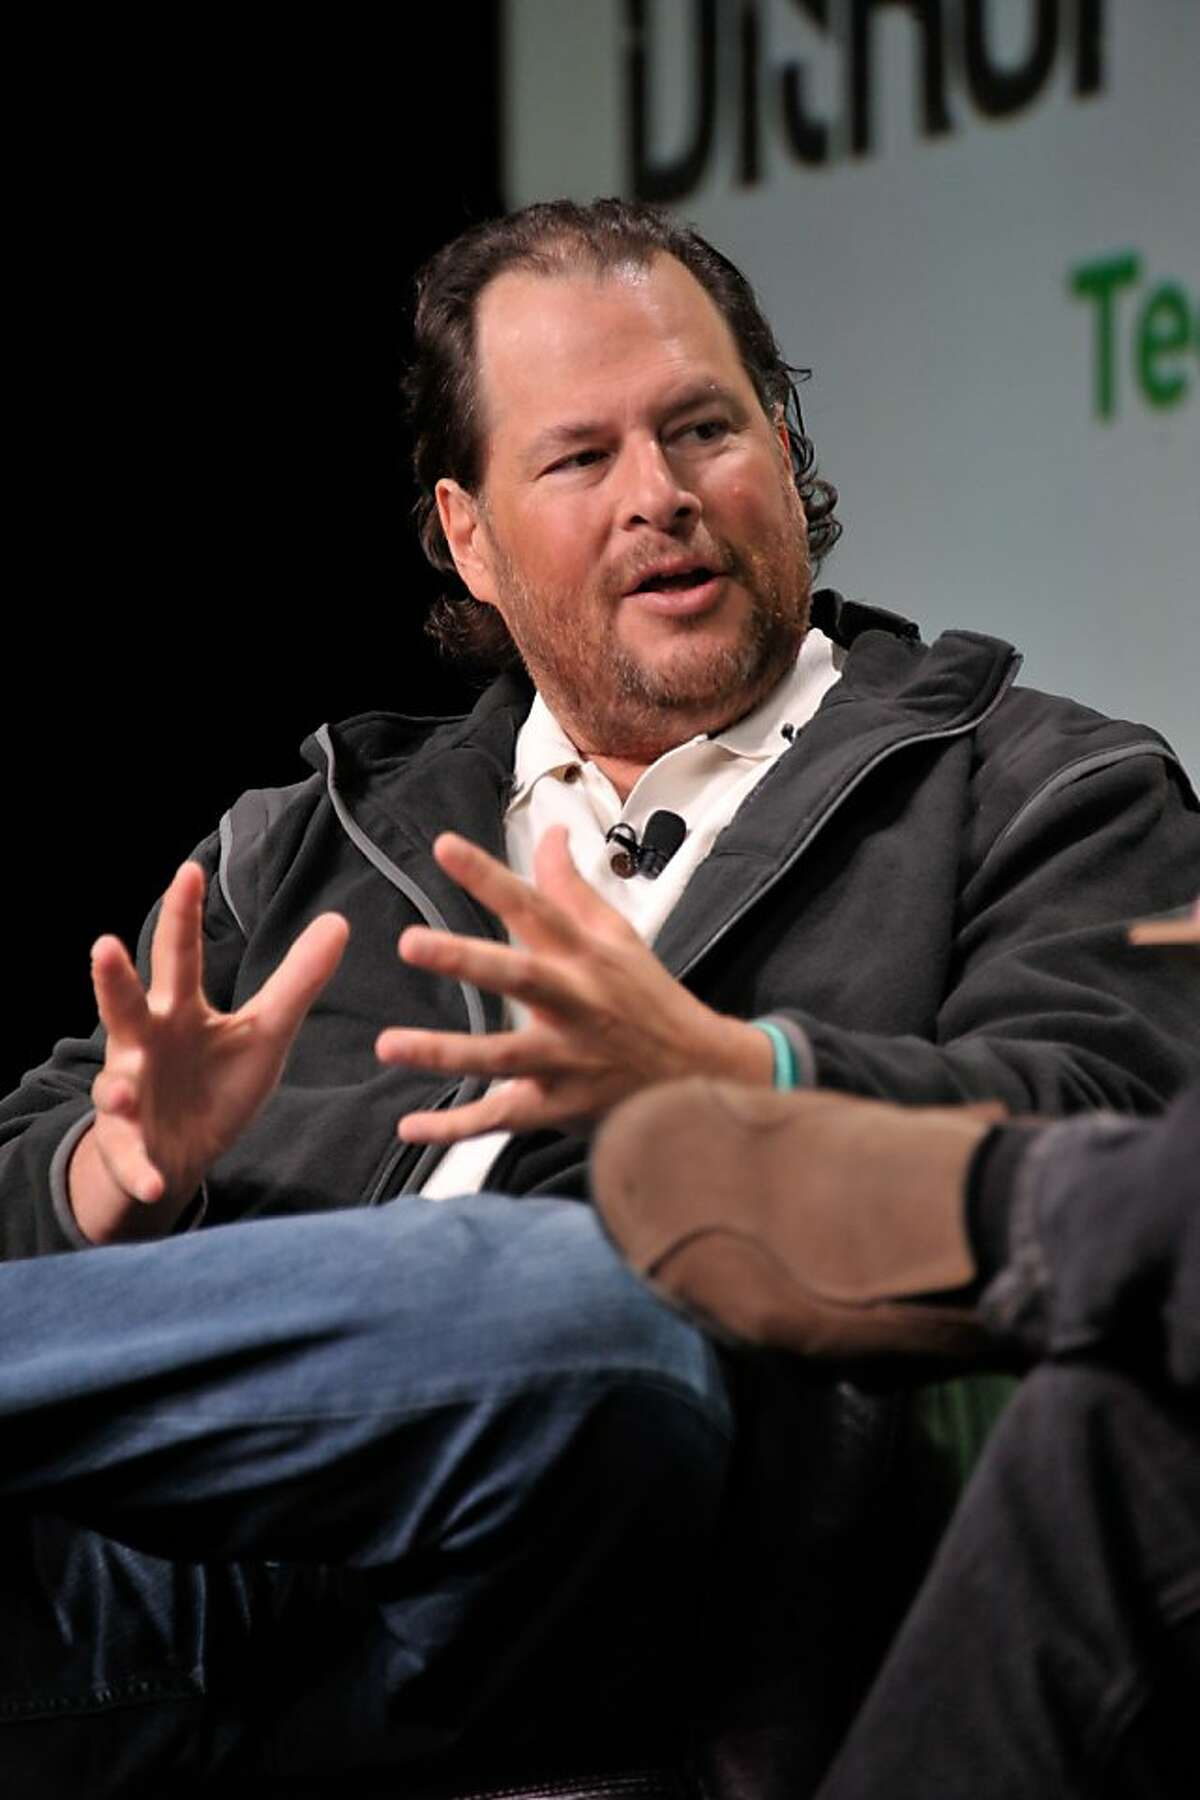 SAN FRANCISCO, CA - SEPTEMBER 10: Mark Benioff of Salesforce.com attends Day 2 of TechCrunch Disrupt SF 2013 at San Francisco Design Center on September 10, 2013 in San Francisco, California. (Photo by Steve Jennings/Getty Images for TechCrunch)